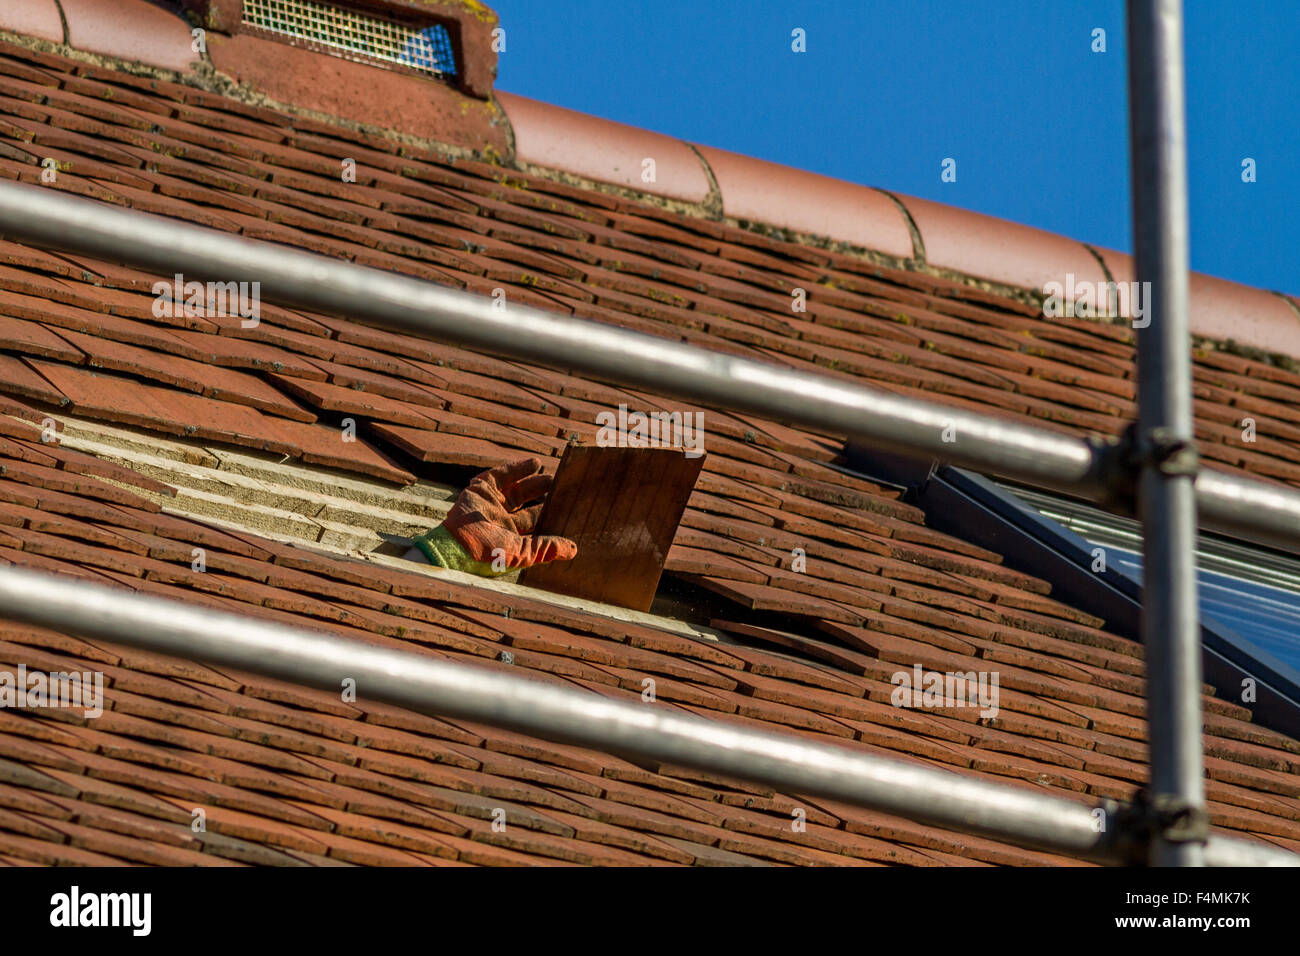 Creating a window in the roof of a loft conversion - Stock Image